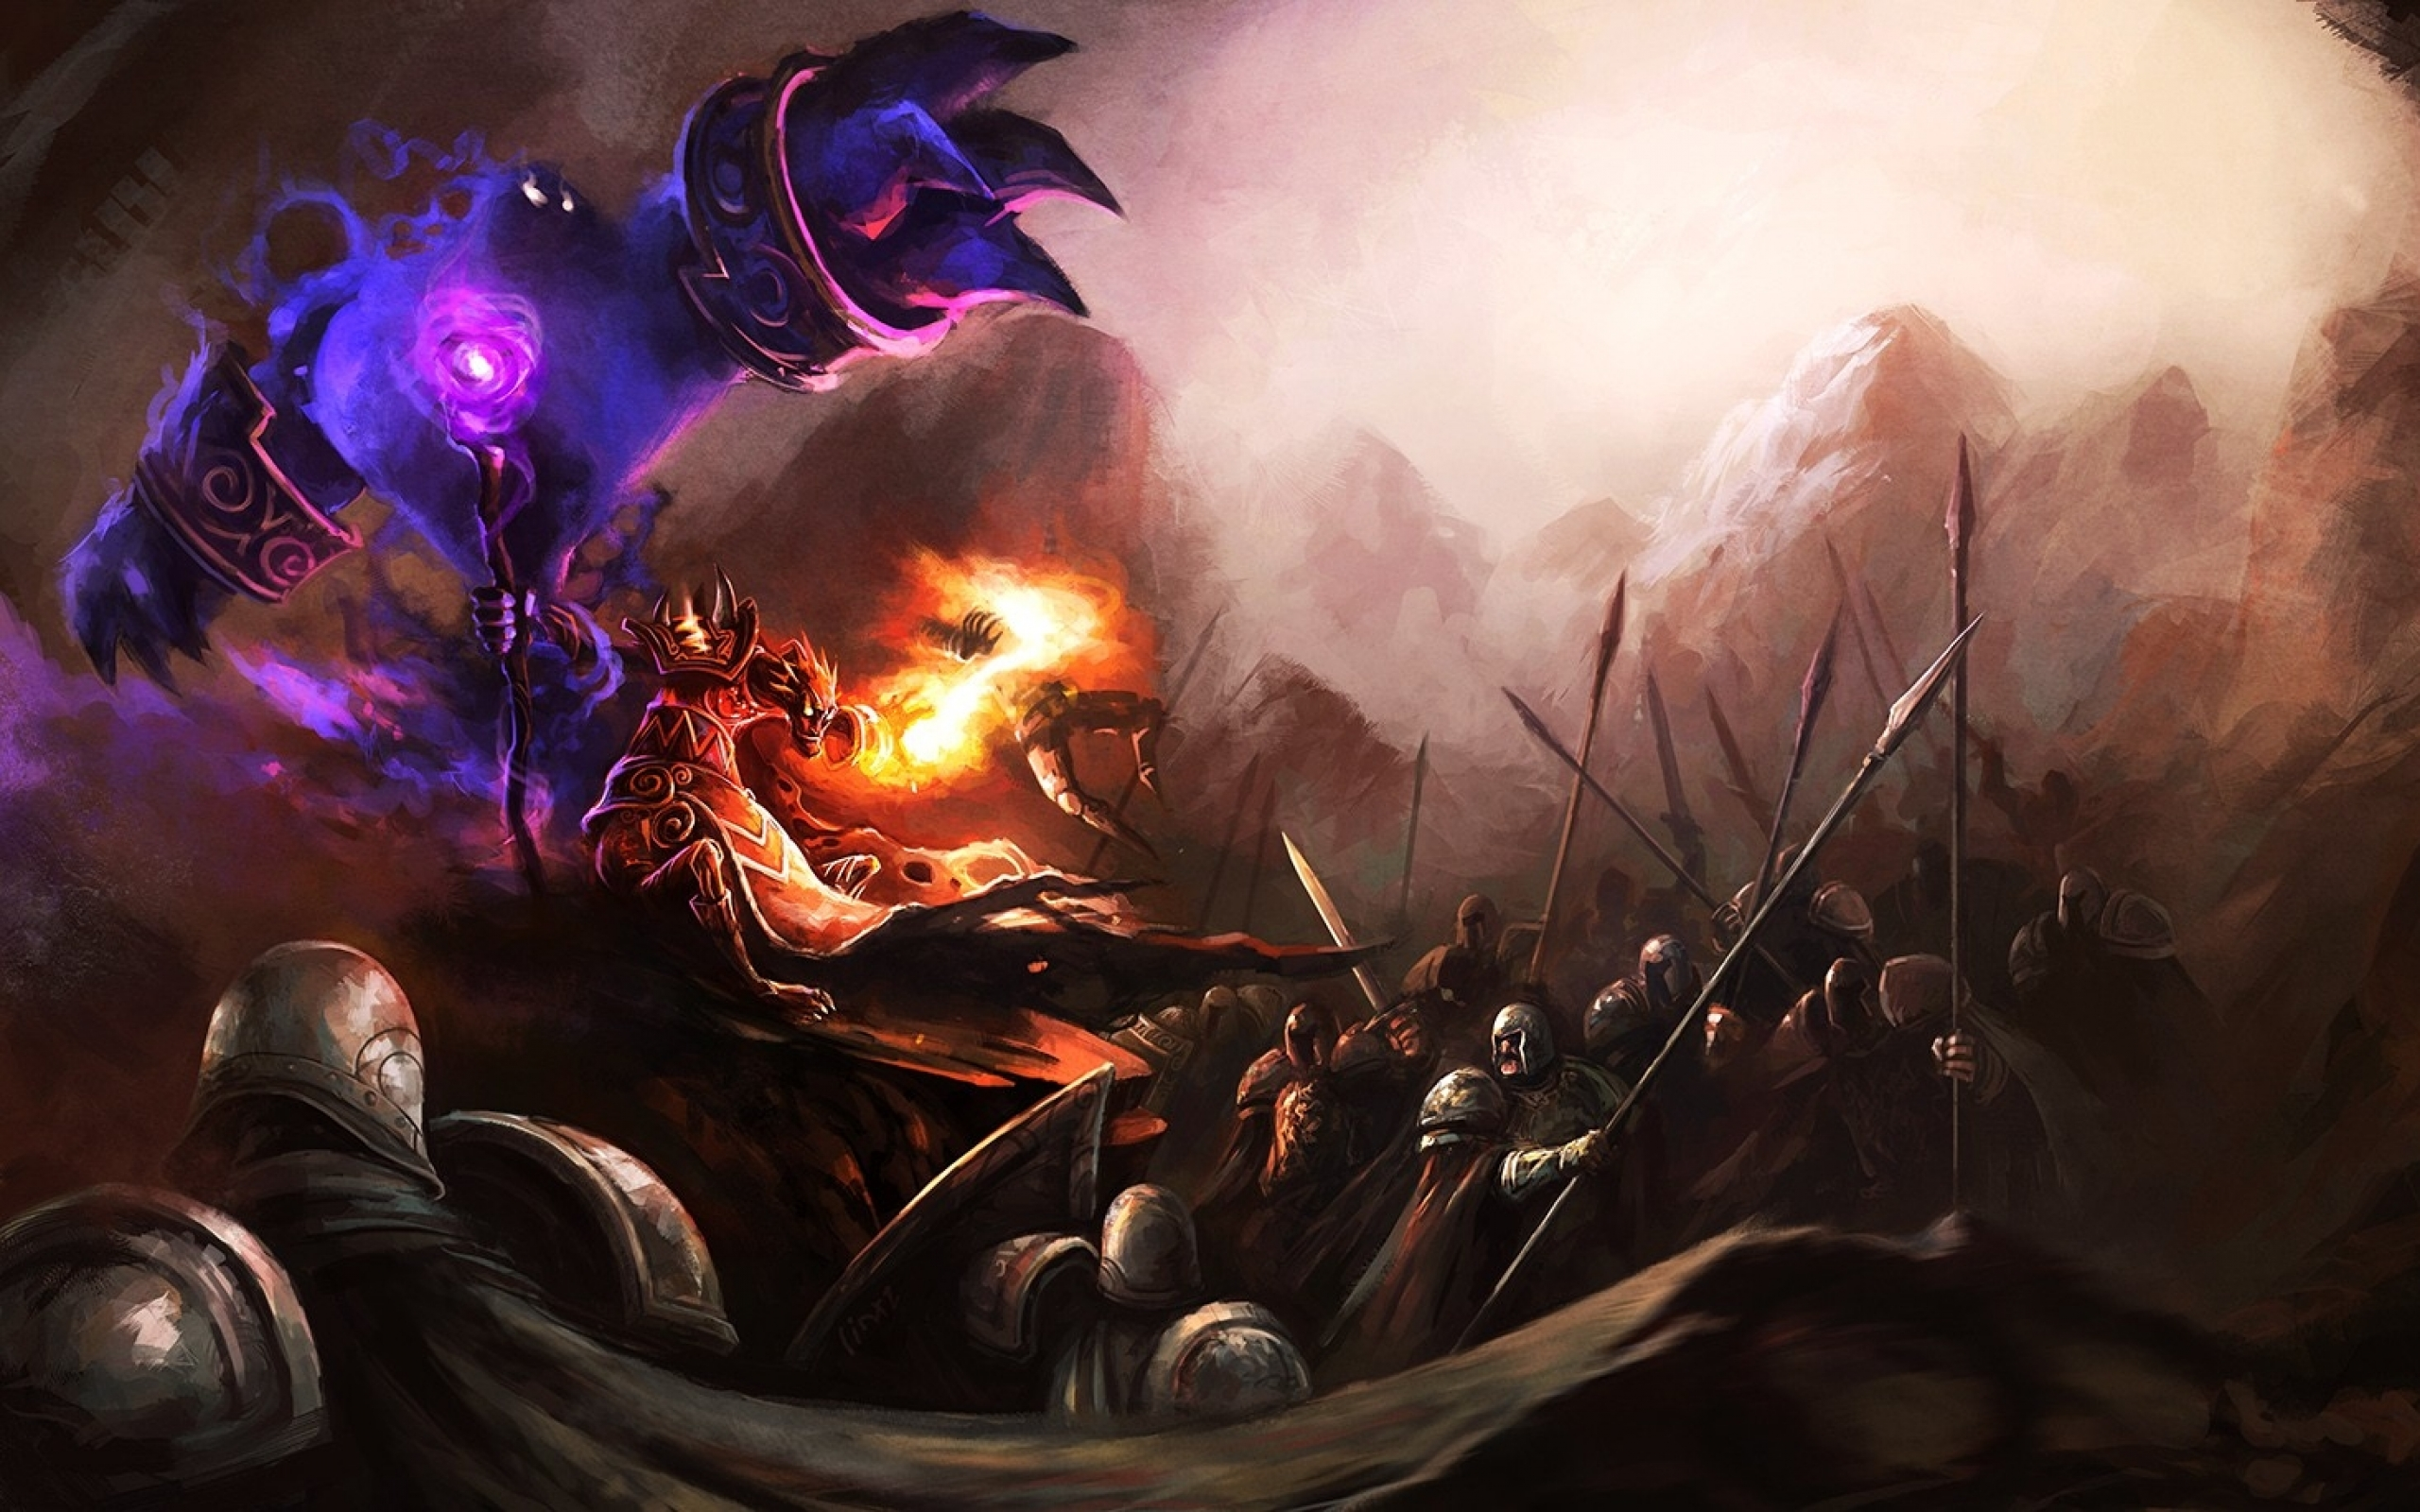 Download Wallpapers Download 2560x1600 video games world of warcraft 2560x1600